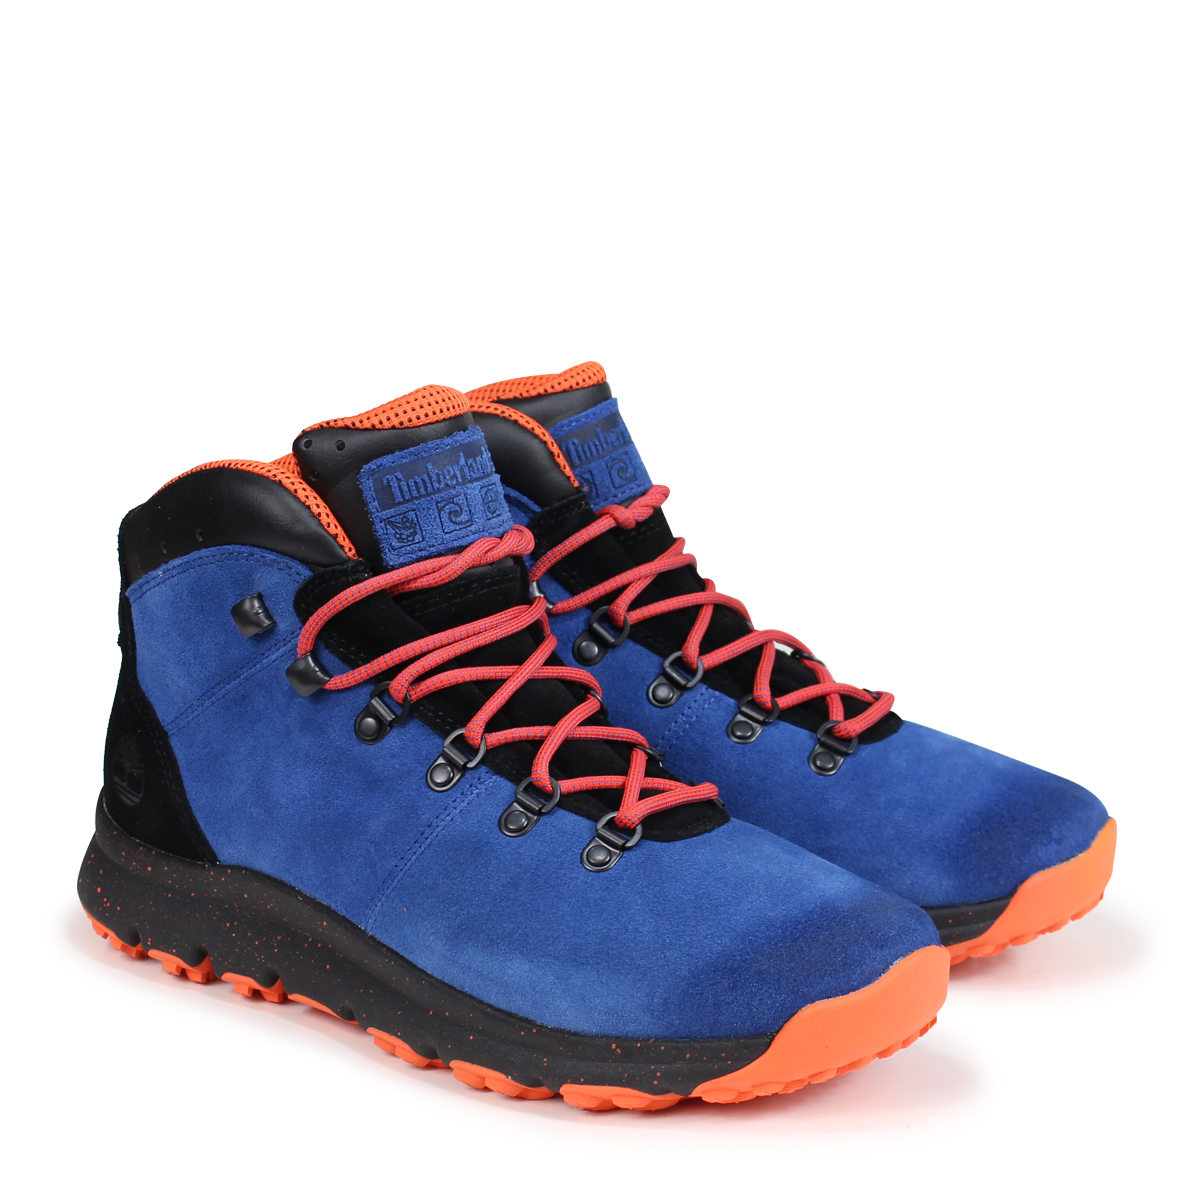 ALLSPORTS  Timberland WORLD HIKER Timberland boots men A1RFR W Wise blue   9 5 Shinnyu load   189   cee7babc286